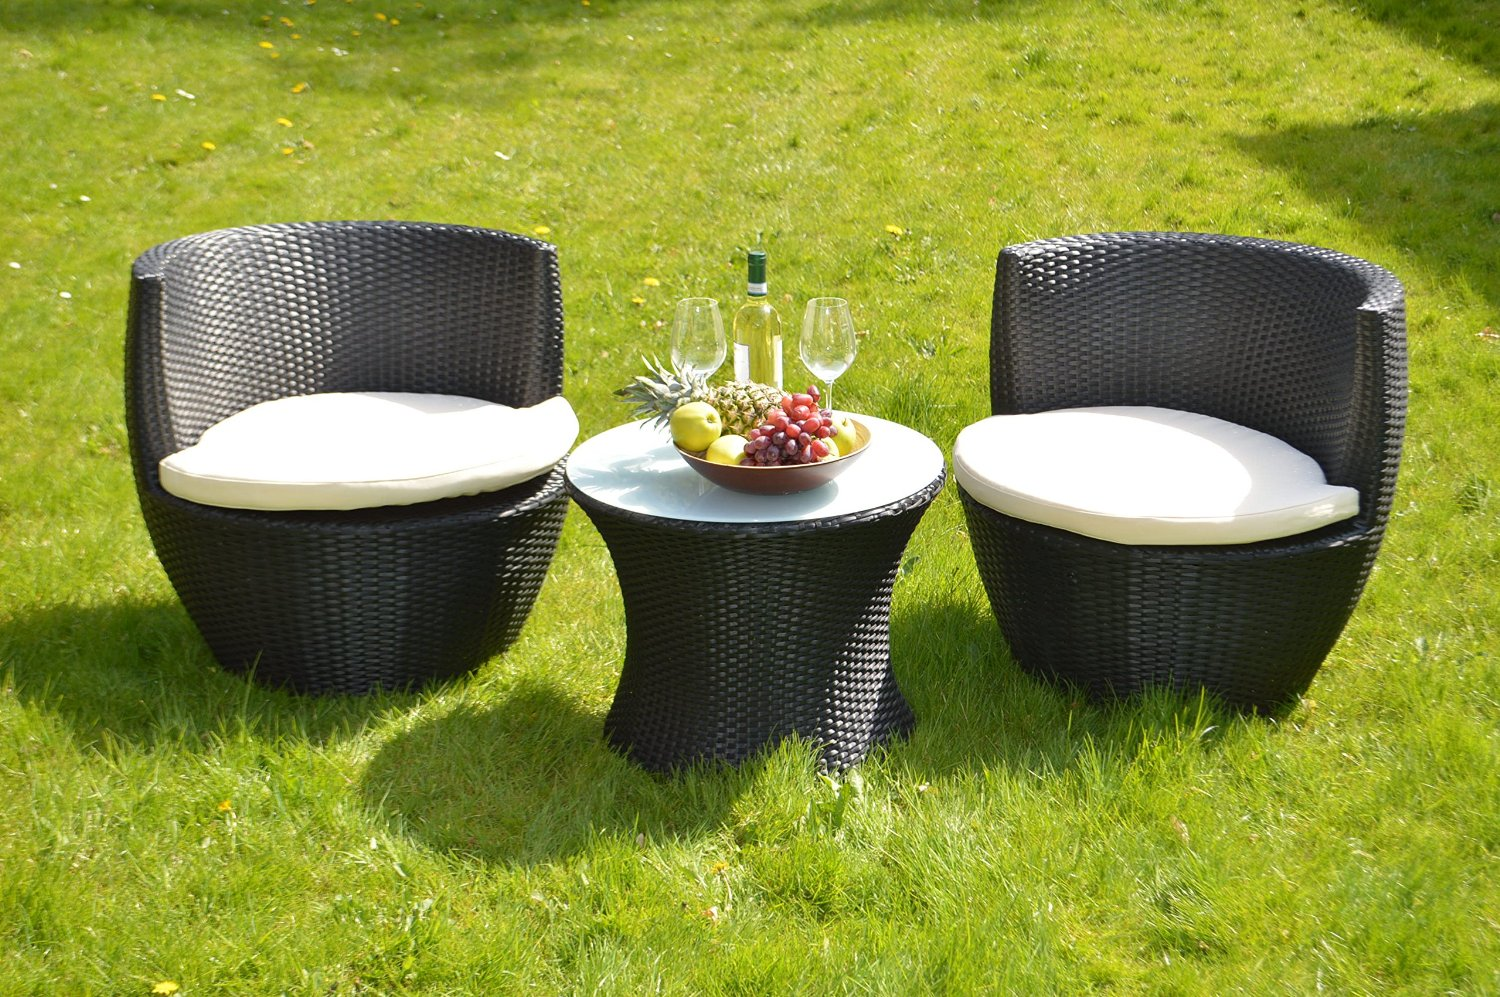 gartenm bel aus polyrattan outdoor m bel polyrattan ideen top. Black Bedroom Furniture Sets. Home Design Ideas